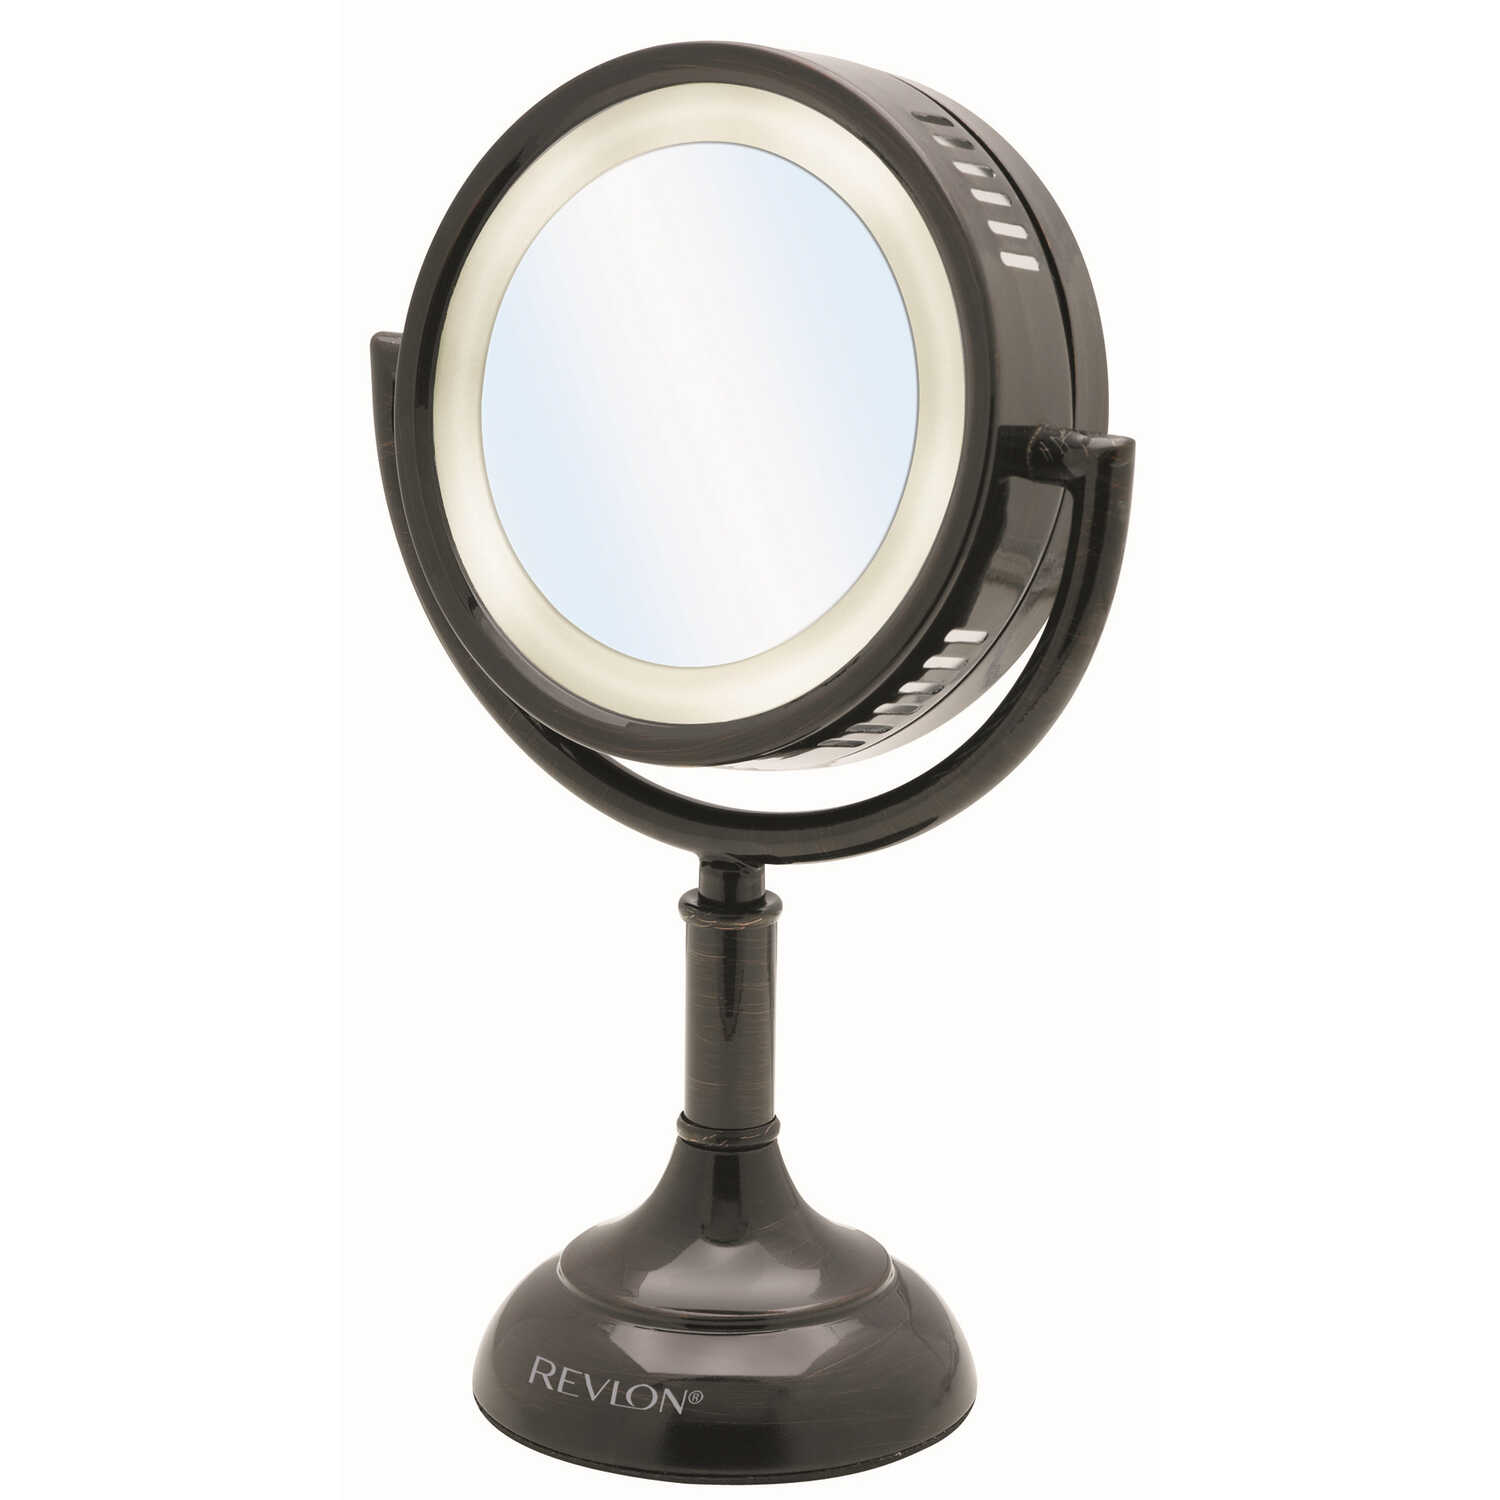 Revlon  12.2 in. H x 8.5 in. W Pedestal  Bathroom Mirror  Oil-Rubbed Bronze  Brown